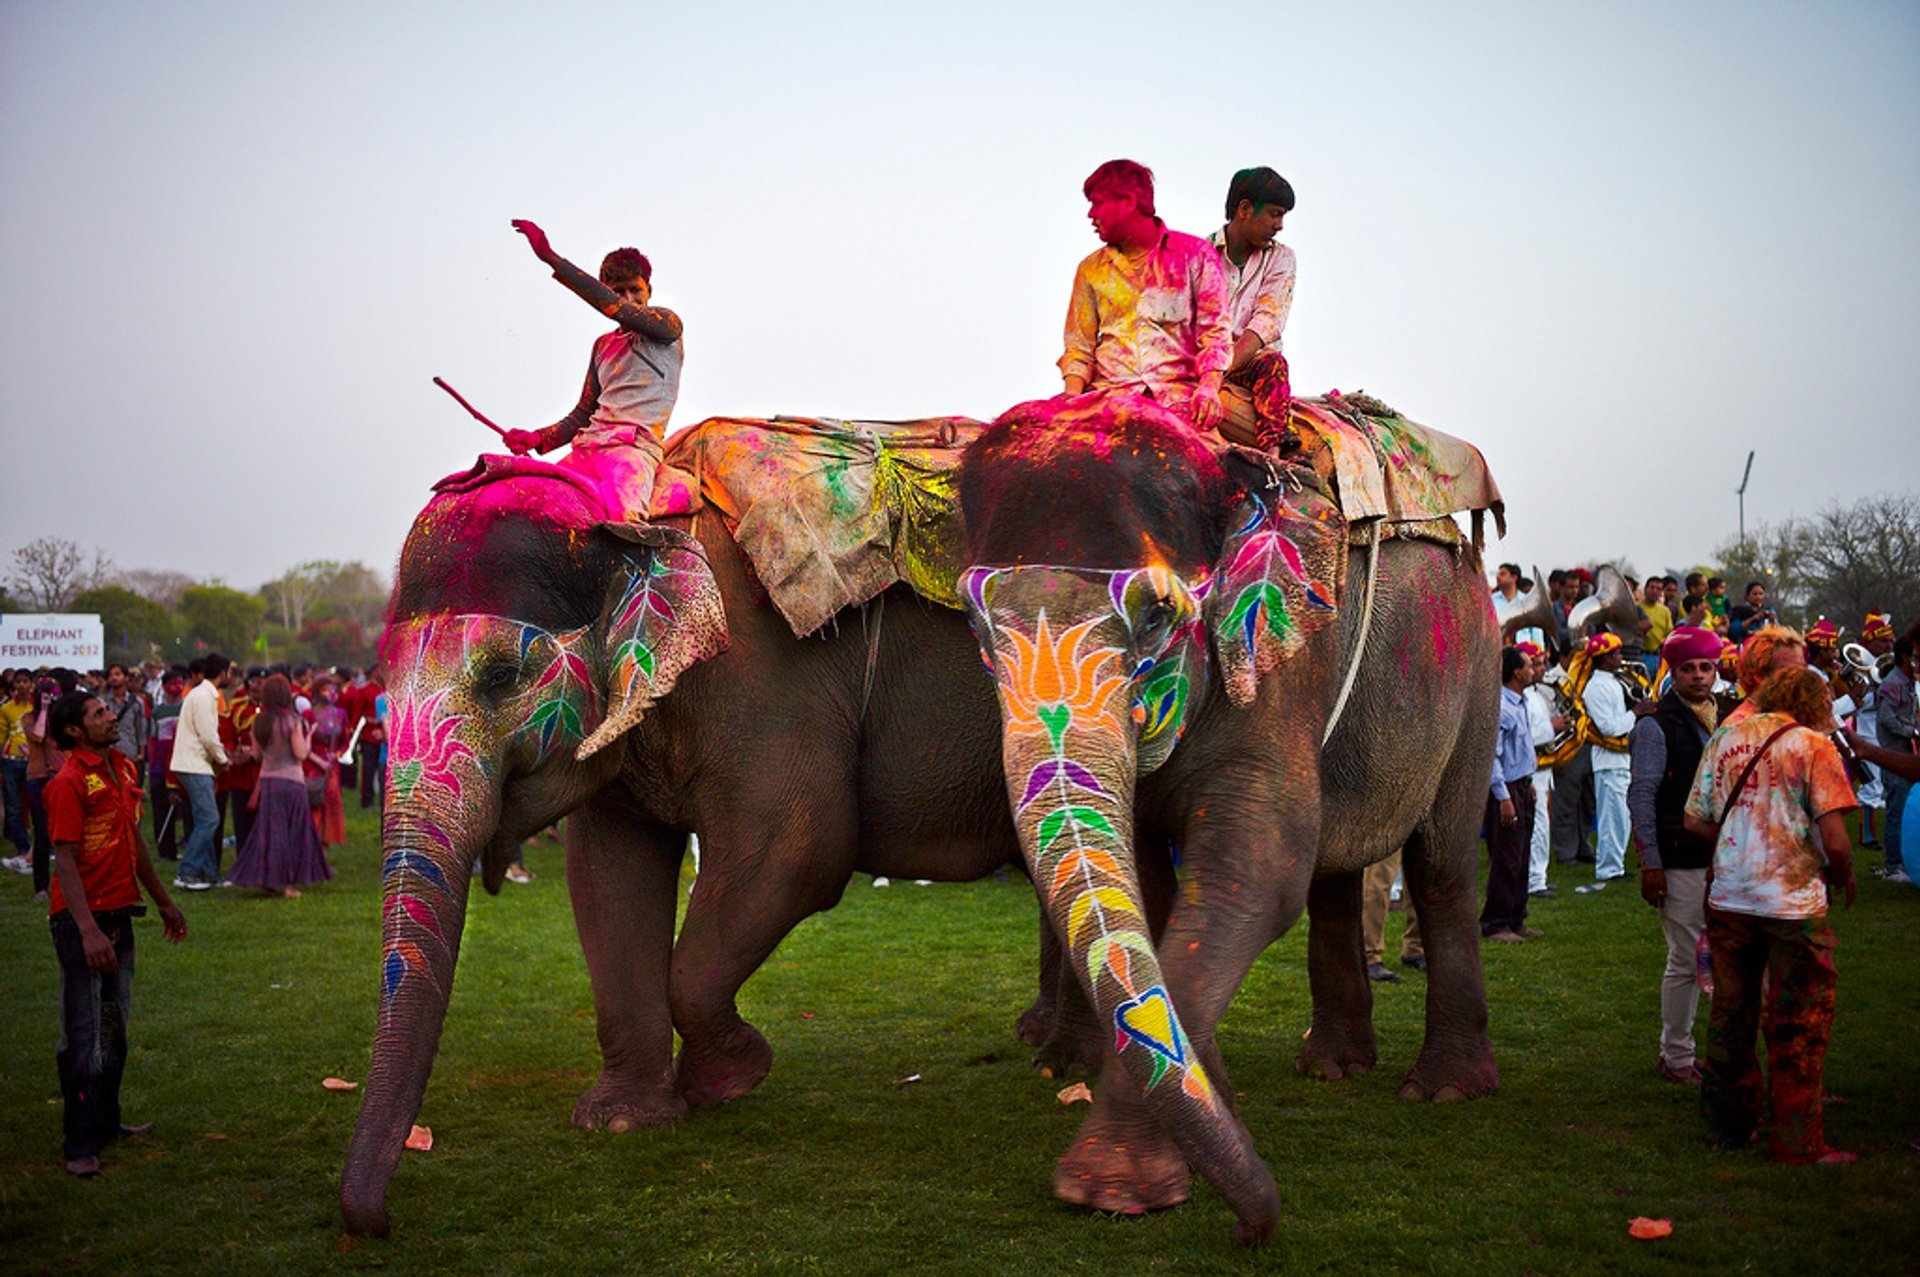 Elephant Festival in India 2020 - Best Time